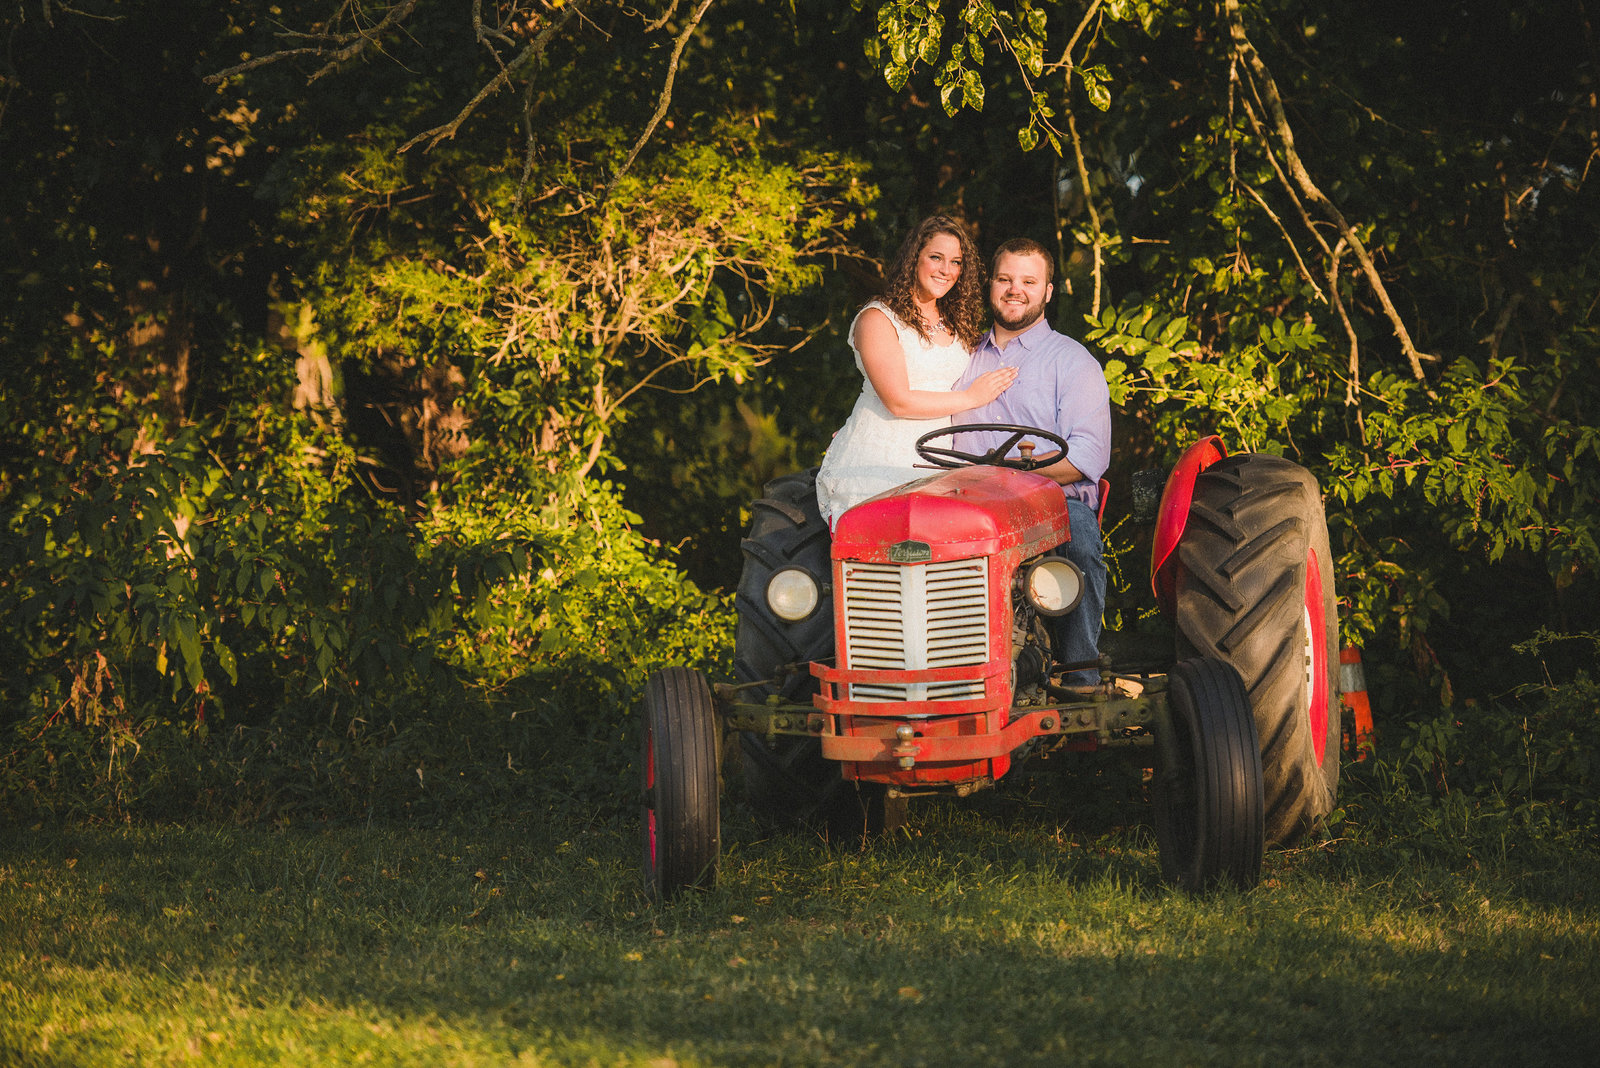 NJ_Rustic_Engagement_Photography069